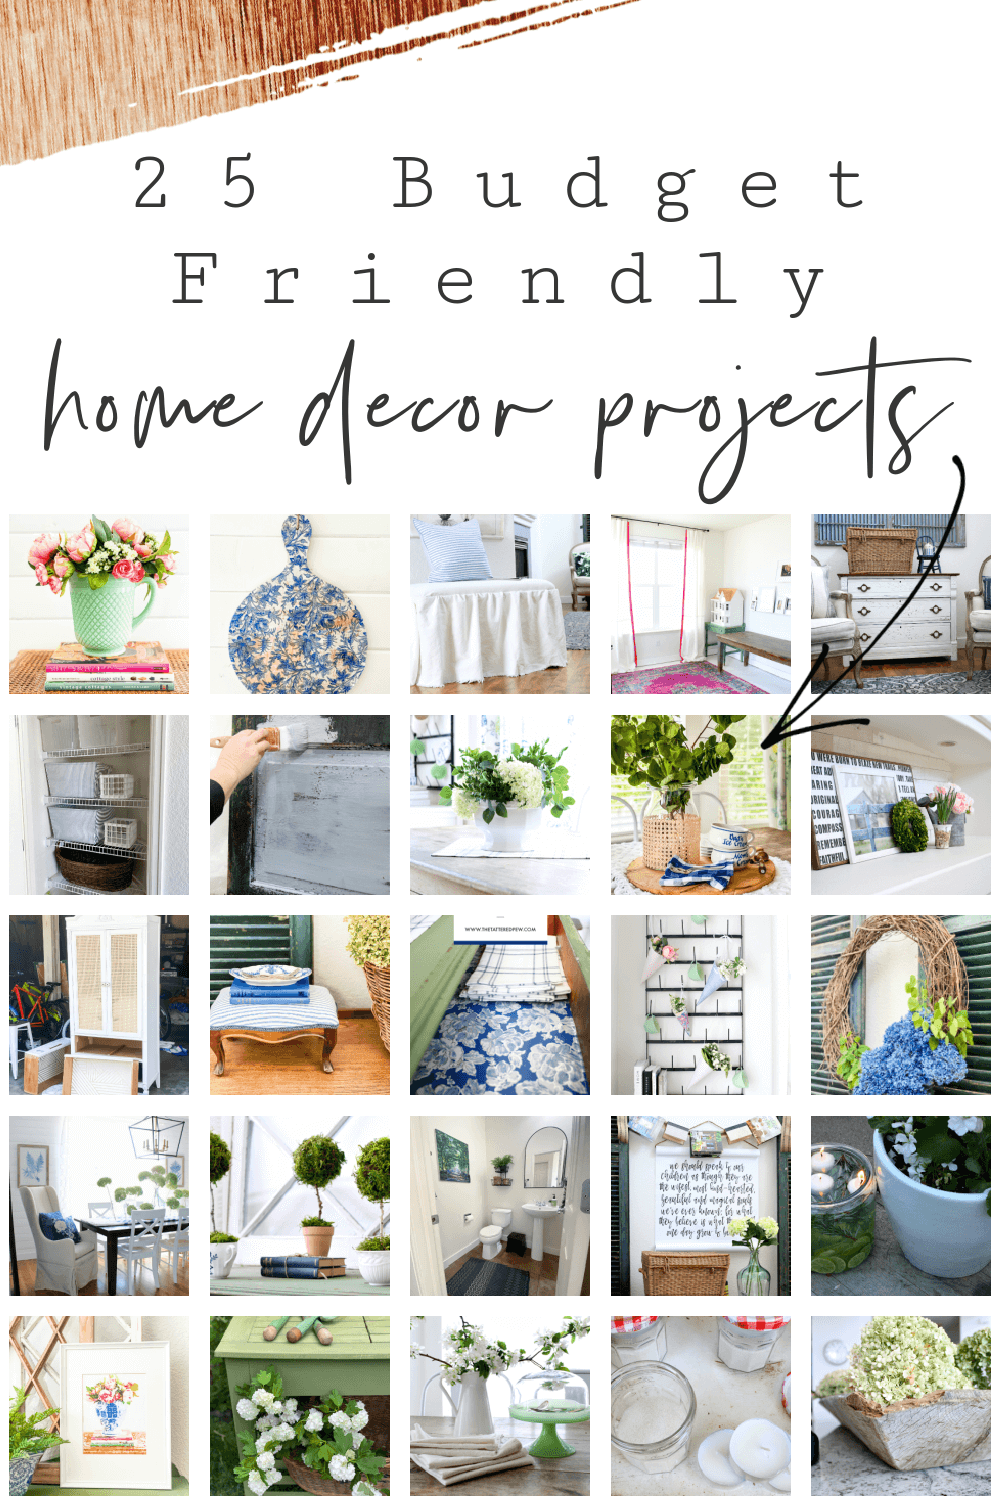 Looking for an easy project? Try these 25 budget friendly home decor ideas!